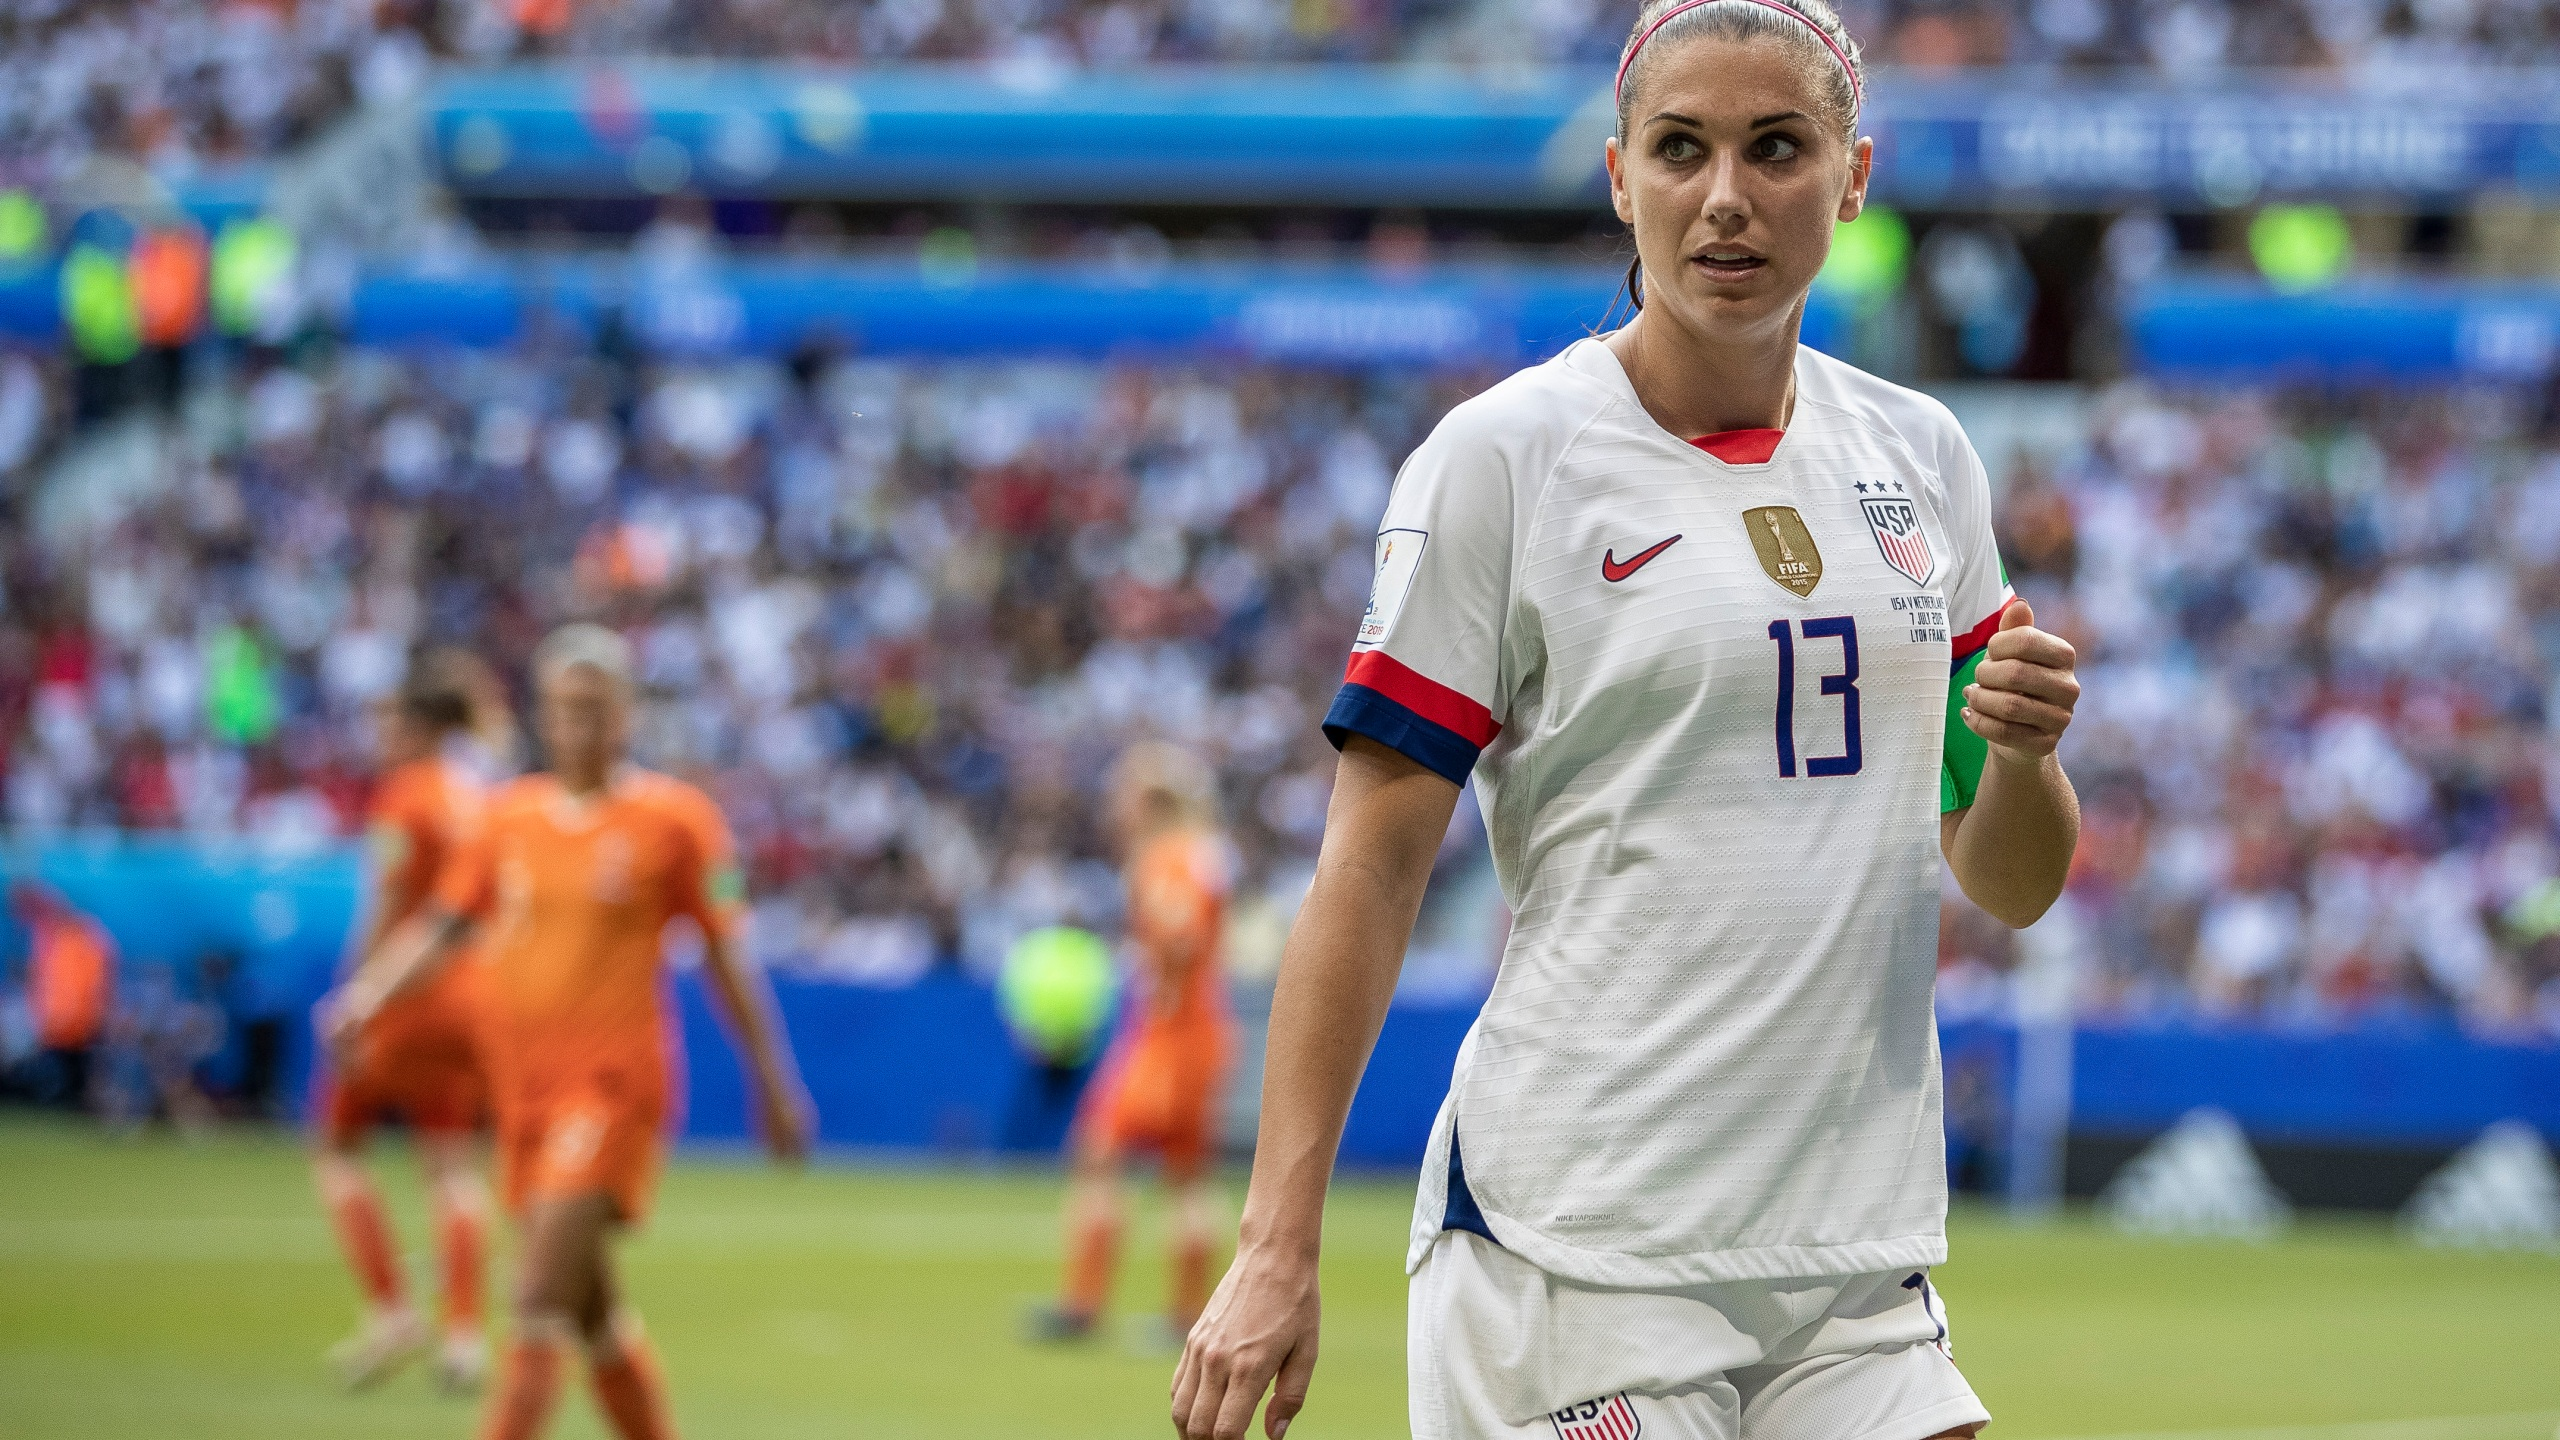 Alex Morgan looks on during the 2019 FIFA Women's World Cup France Final match between the U.S. and the Netherlands on July 07, 2019, in Lyon, France. (Maja Hitij/Getty Images)